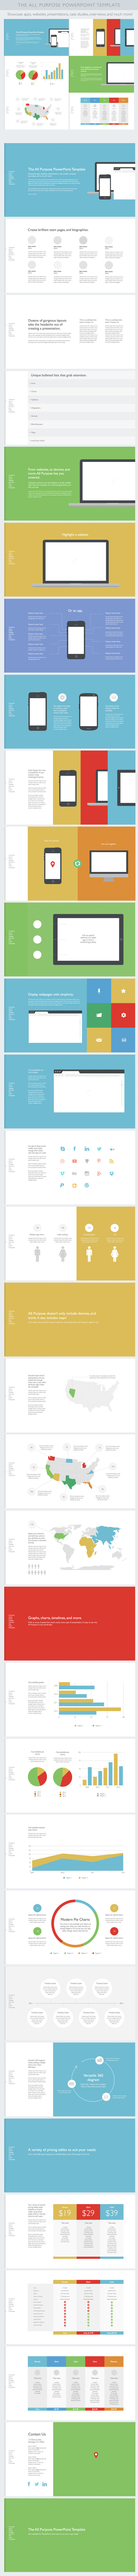 Flat All Purpose PowerPoint Template - Presentation Templates